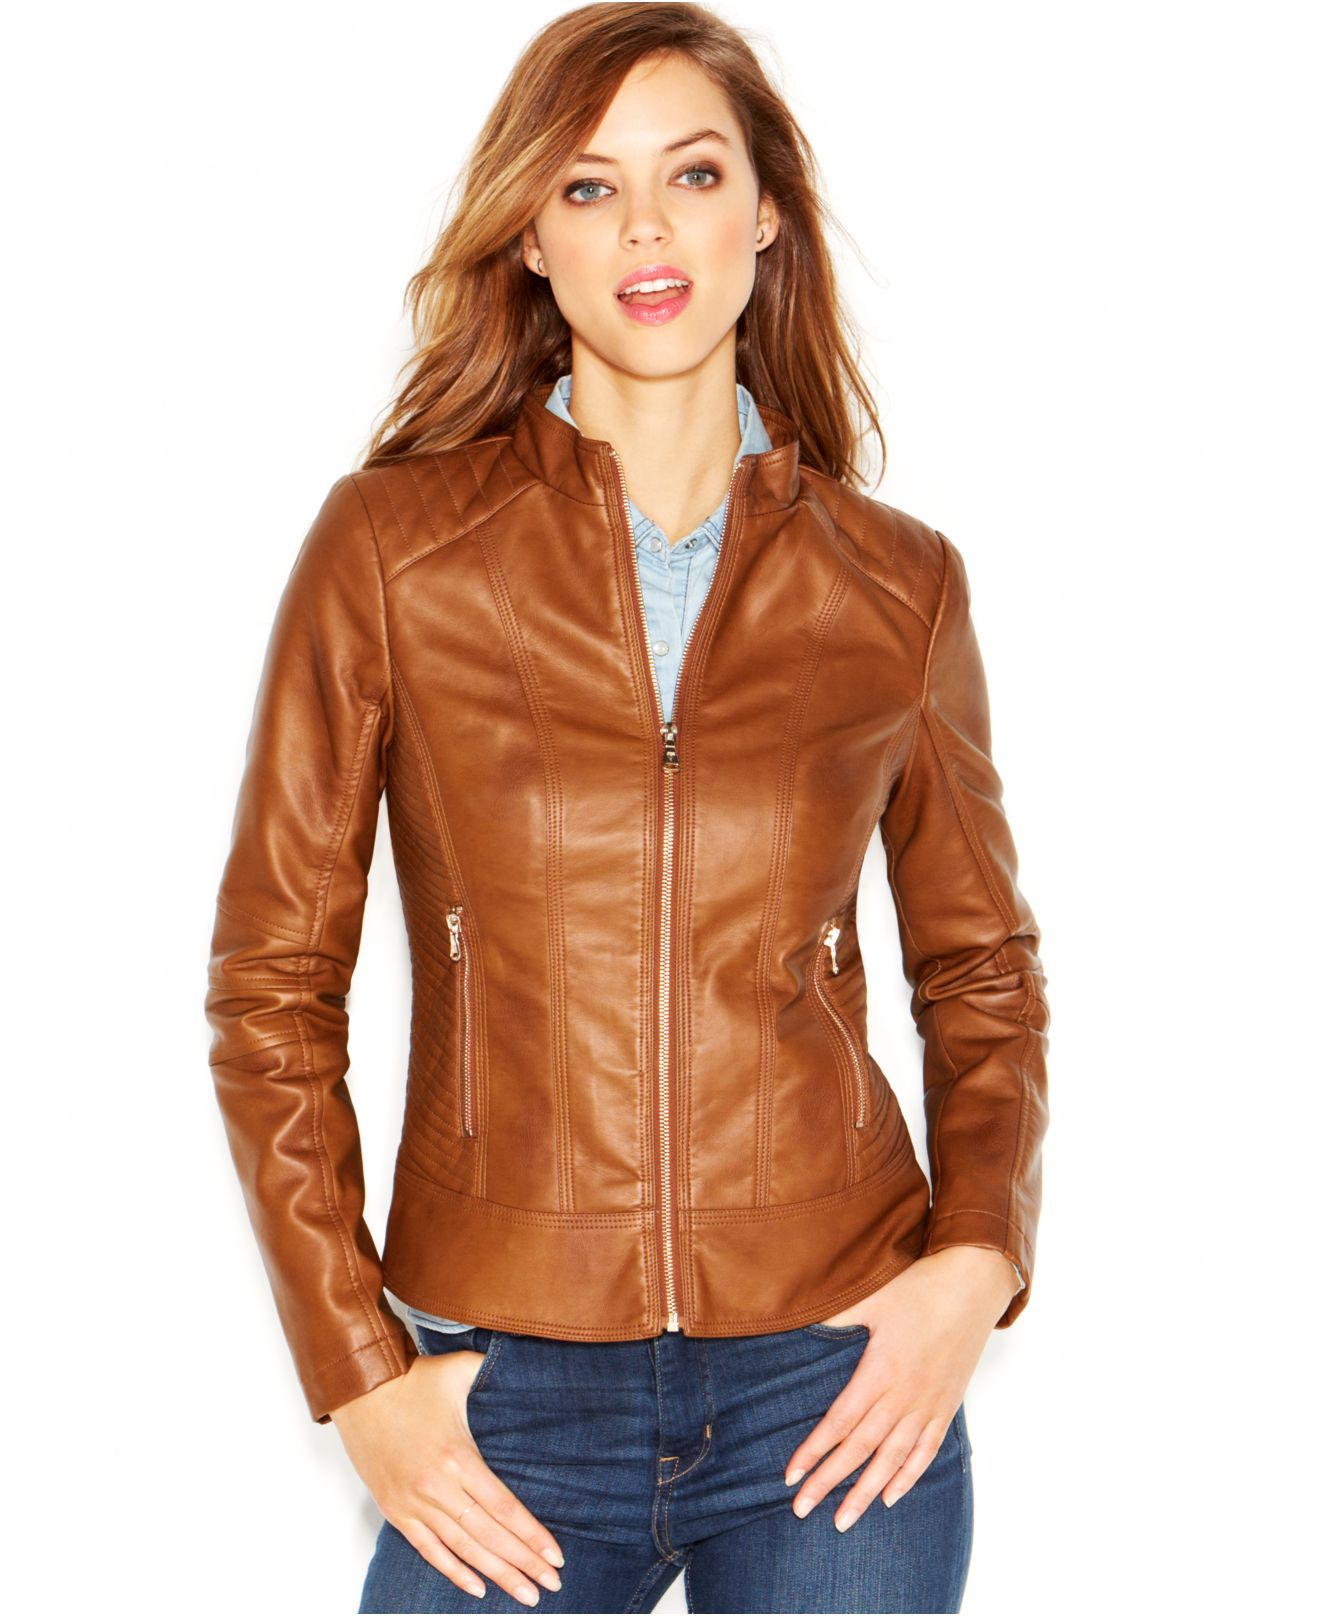 Brown faux leather jacket women